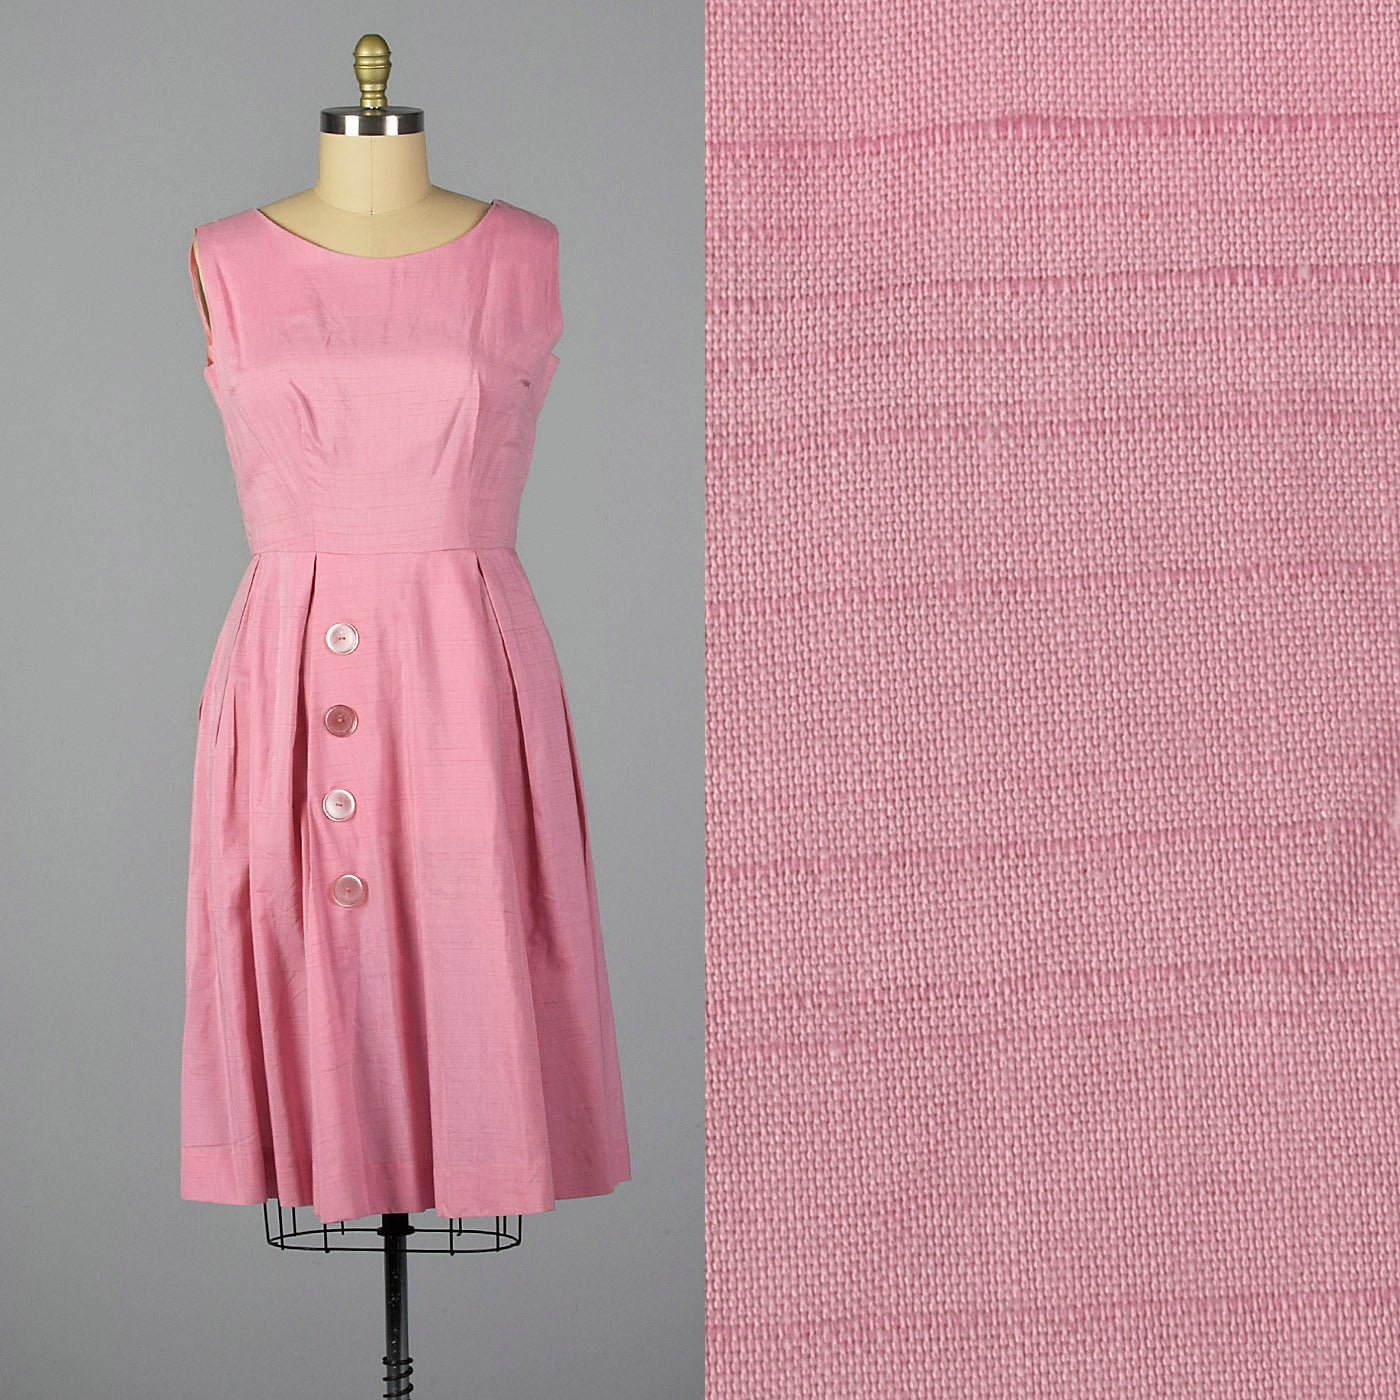 1950s Pink Polished Cotton Dress with Large Buttons